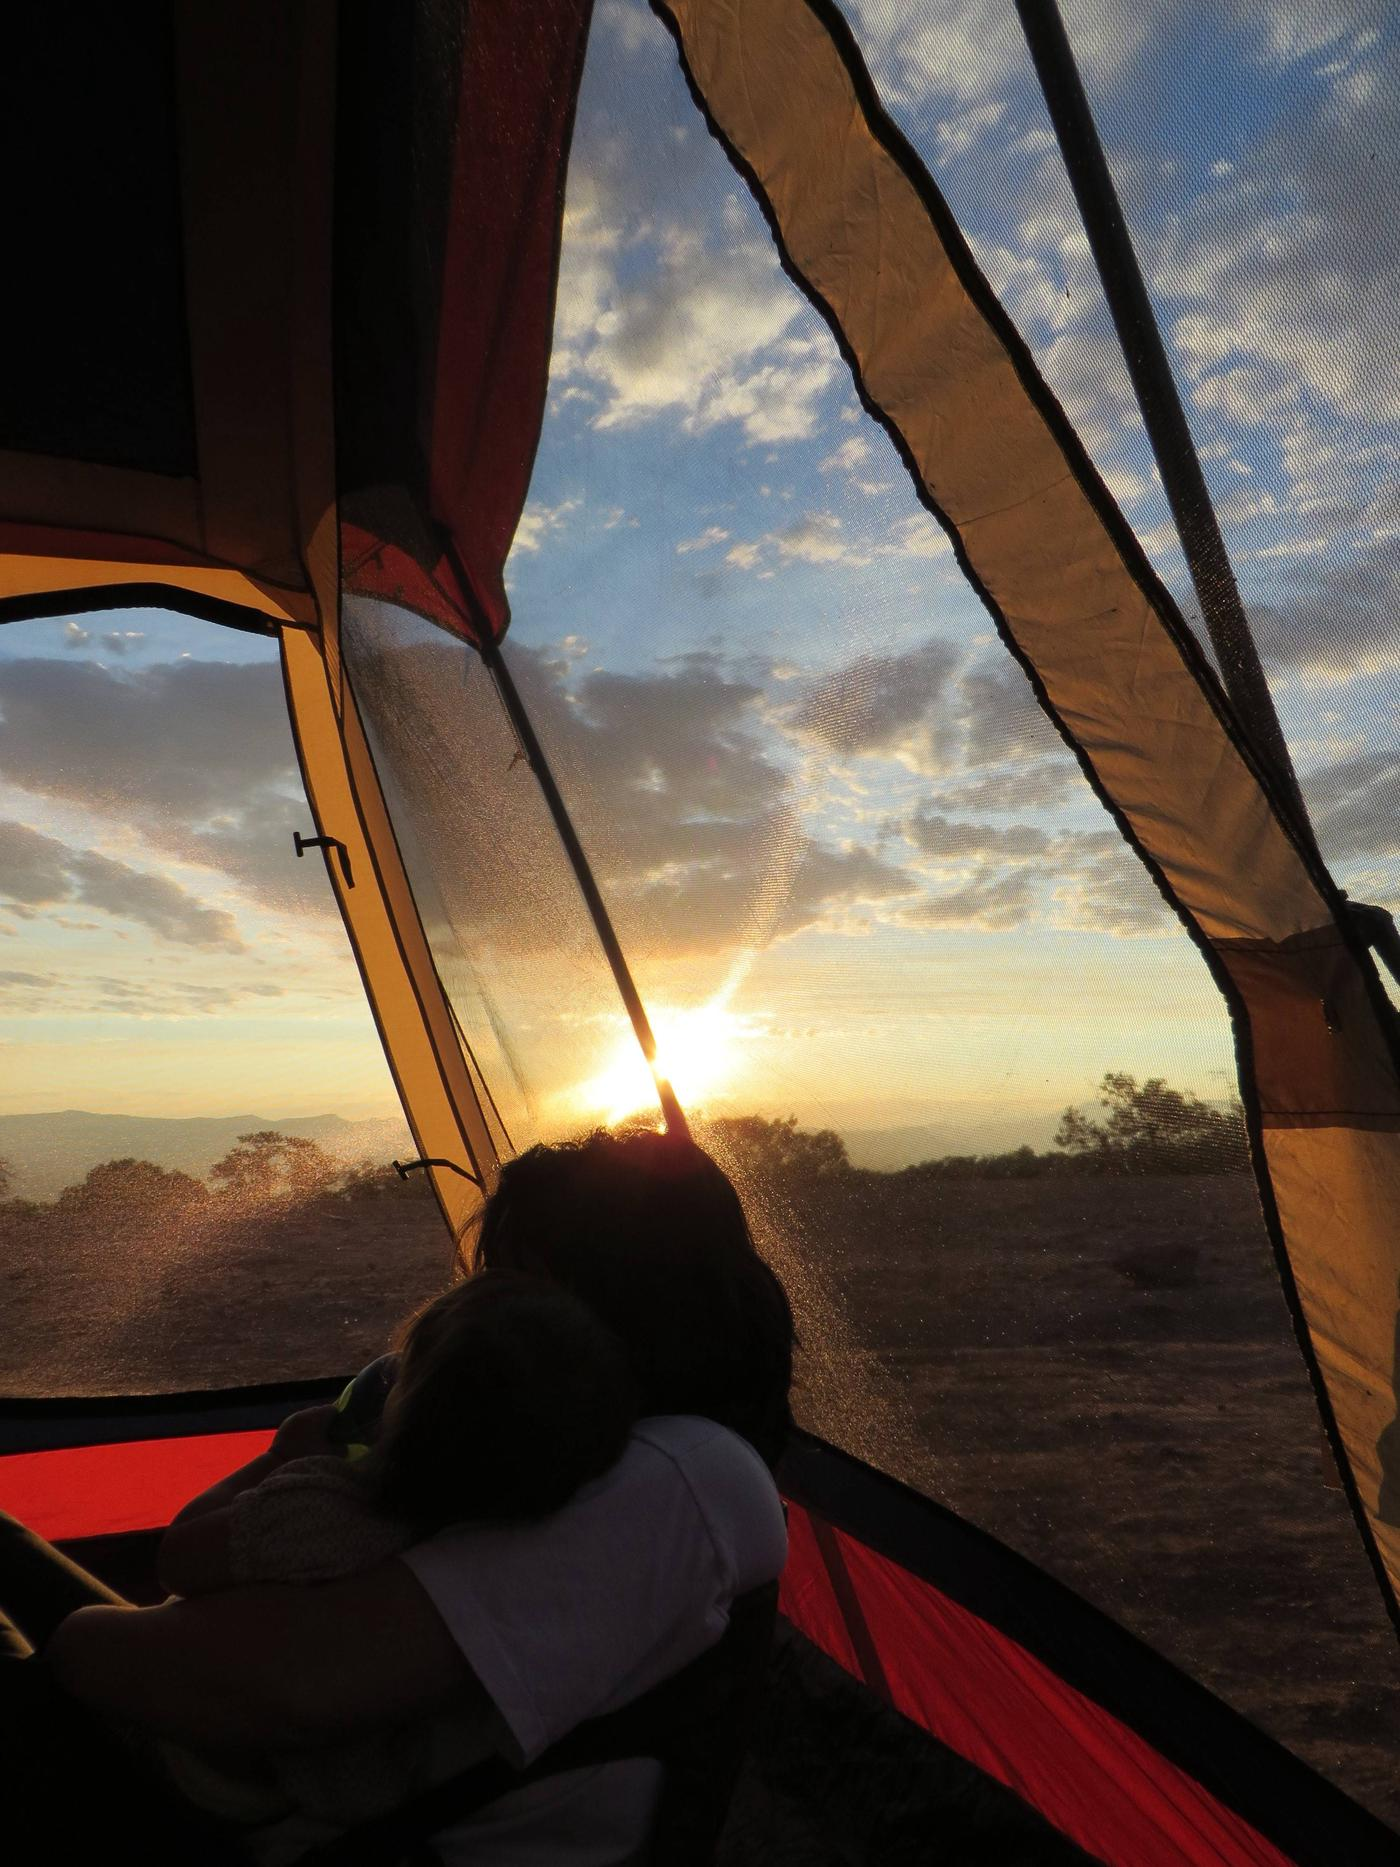 Saddlehorn CampgroundSunrise From Within a Tent in Saddlehorn Campground